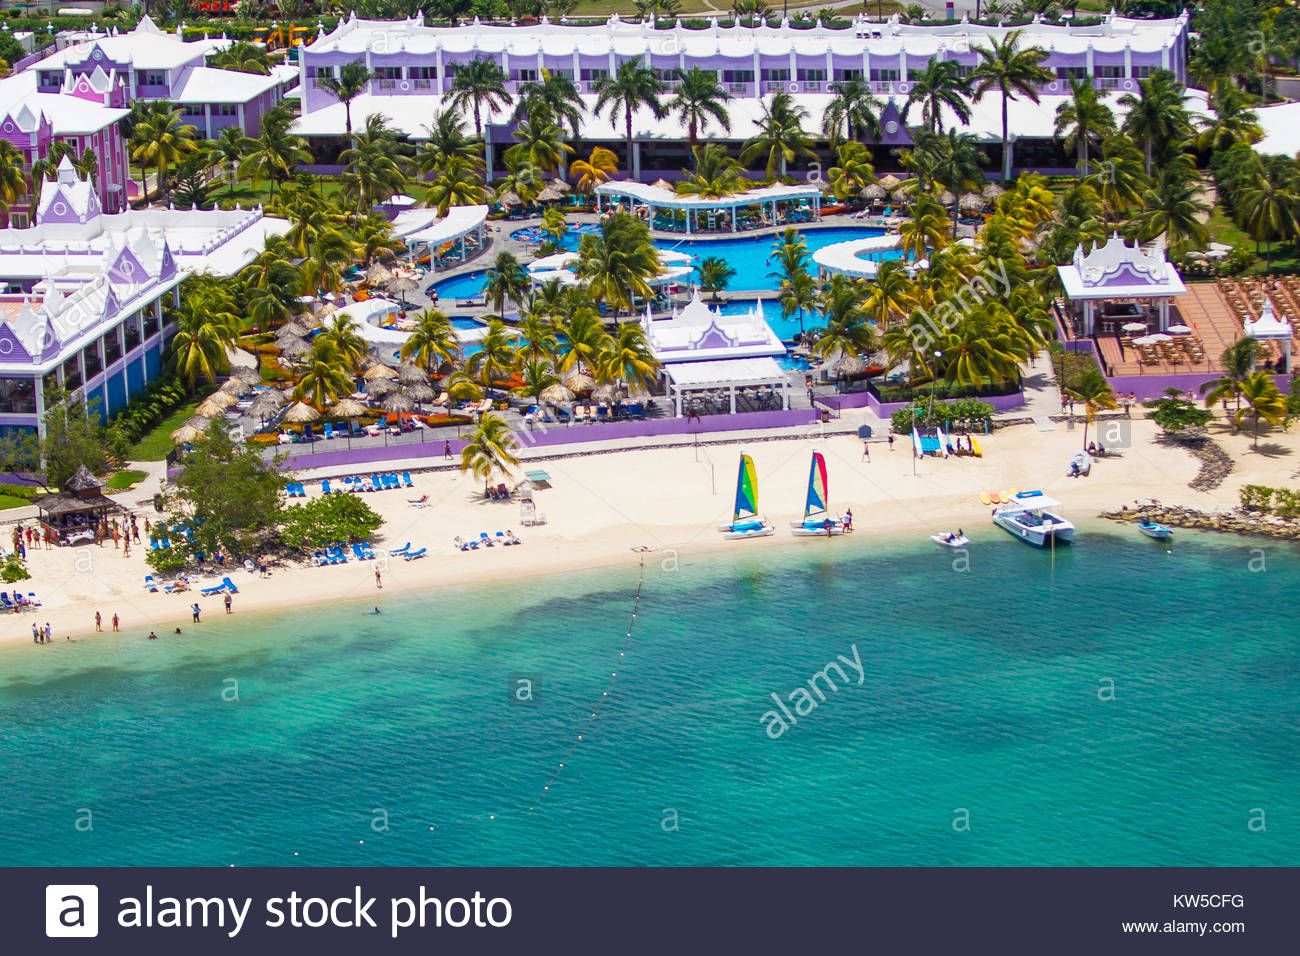 An aerial view of the Sandals Resort on the north coast of Jamaica, near Montego Bay. - Stock Image